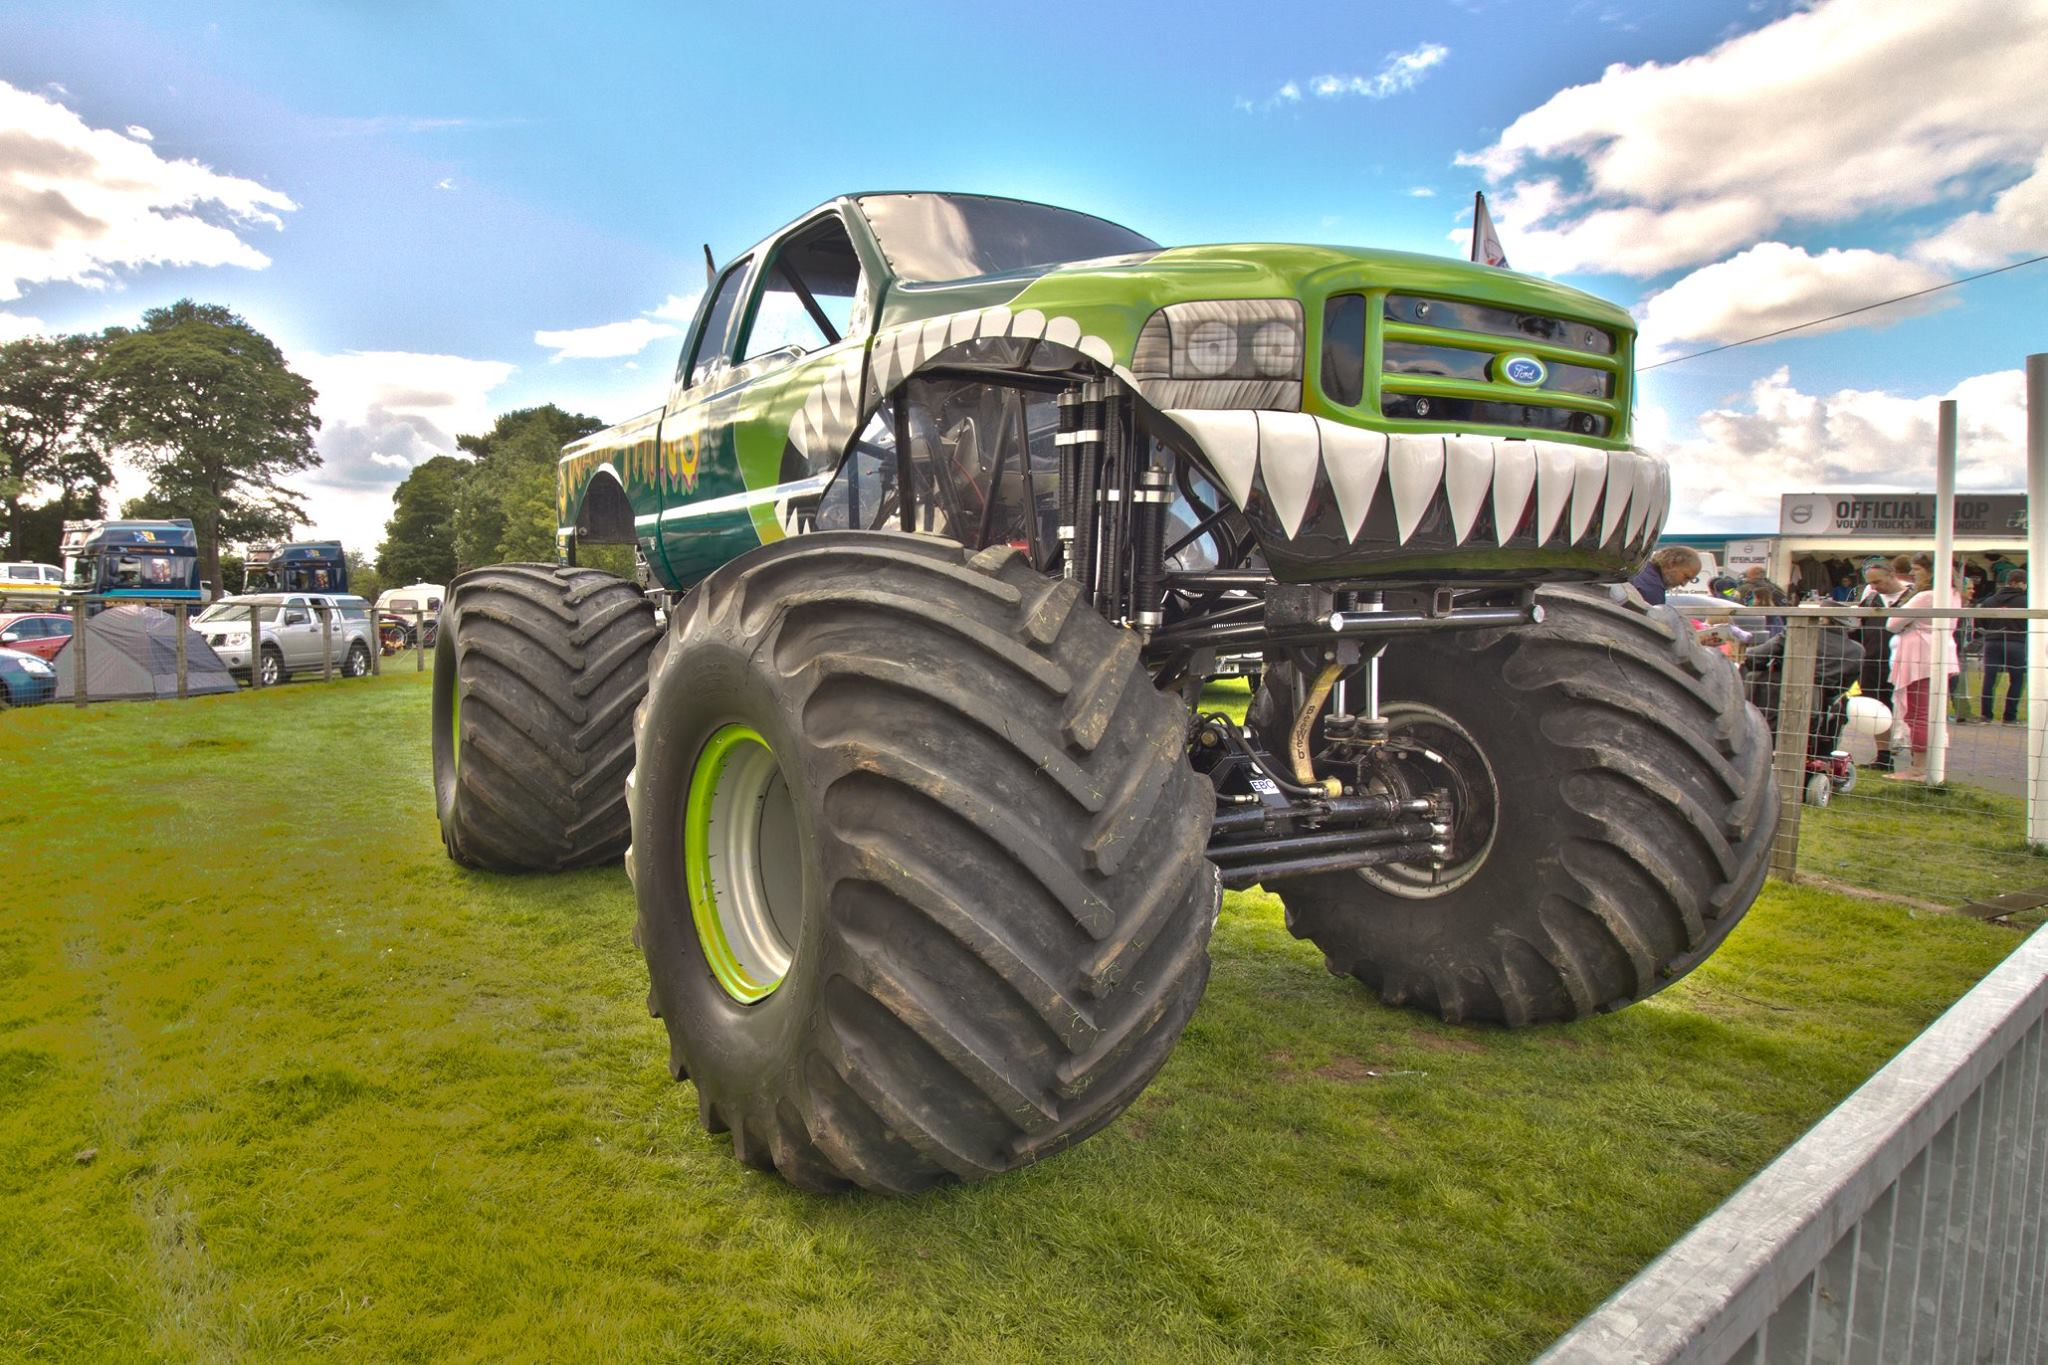 Lucas Oil Uk Swamp Thing Monster Truck